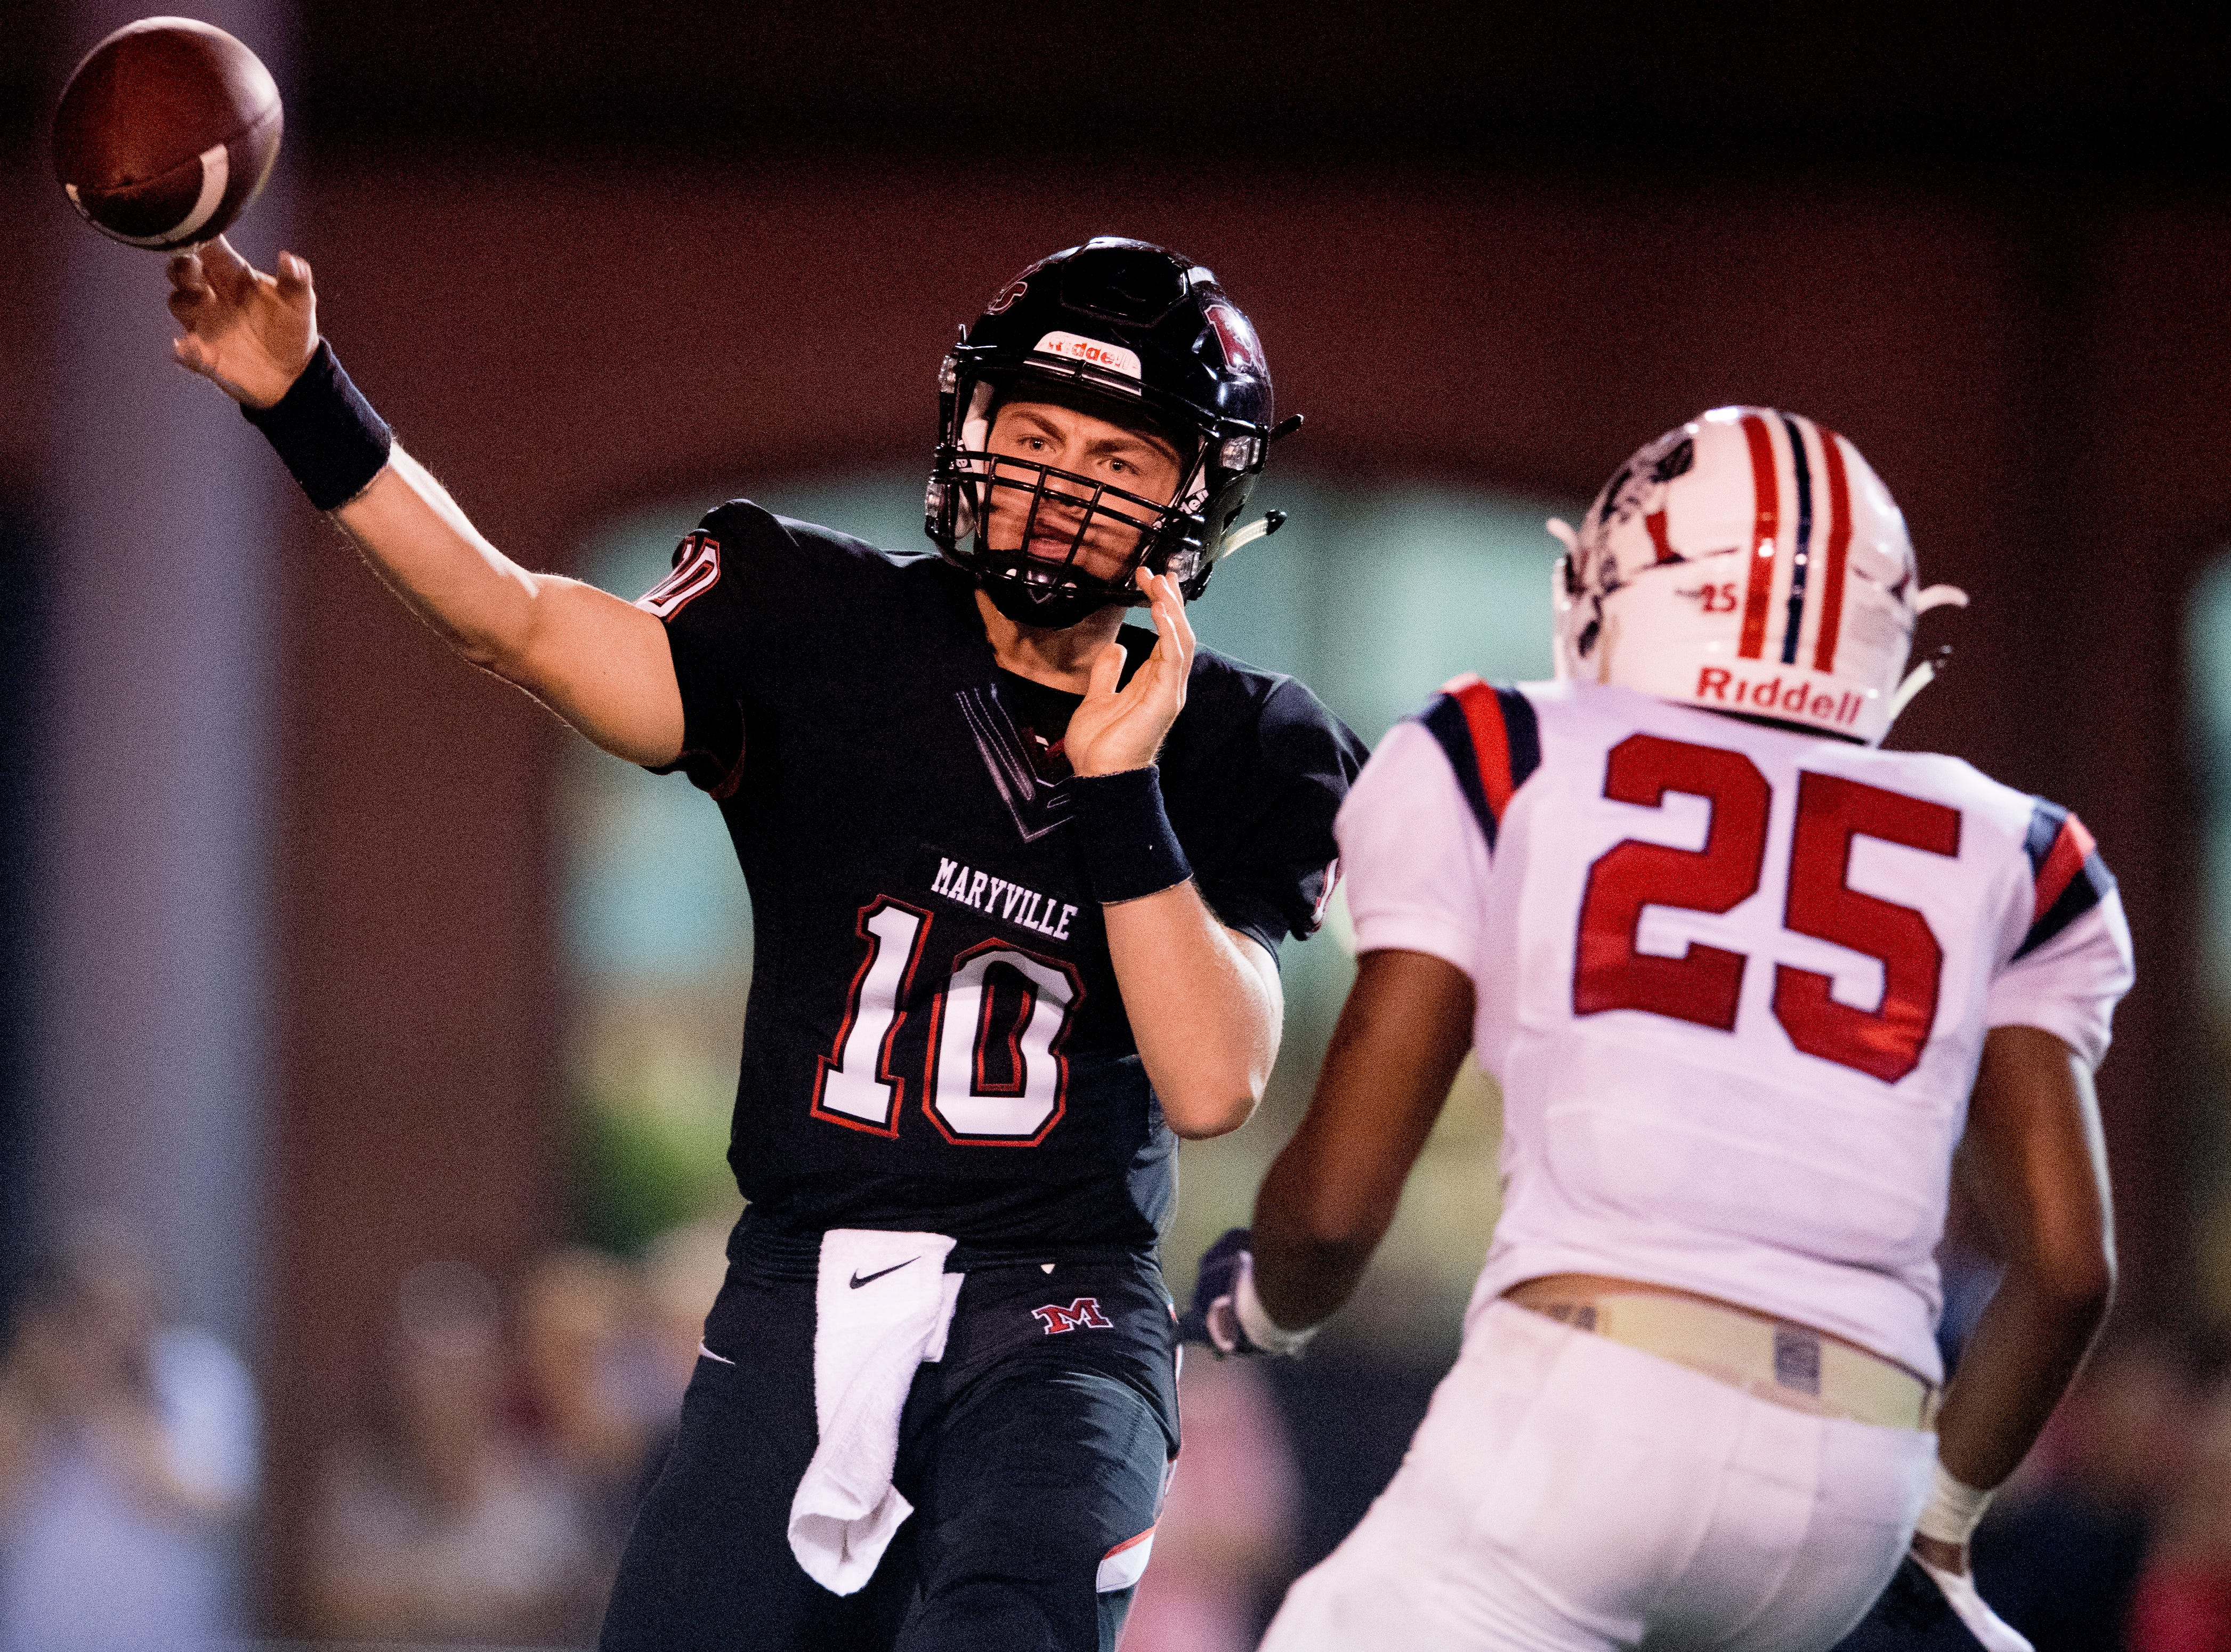 Maryville's Braden Carnes (10) throws a pass past Oakland's Tim Pannell (25) during a football game between Maryville and Oakland at Maryville High School in Maryville, Tennessee on Friday, August 24, 2018.